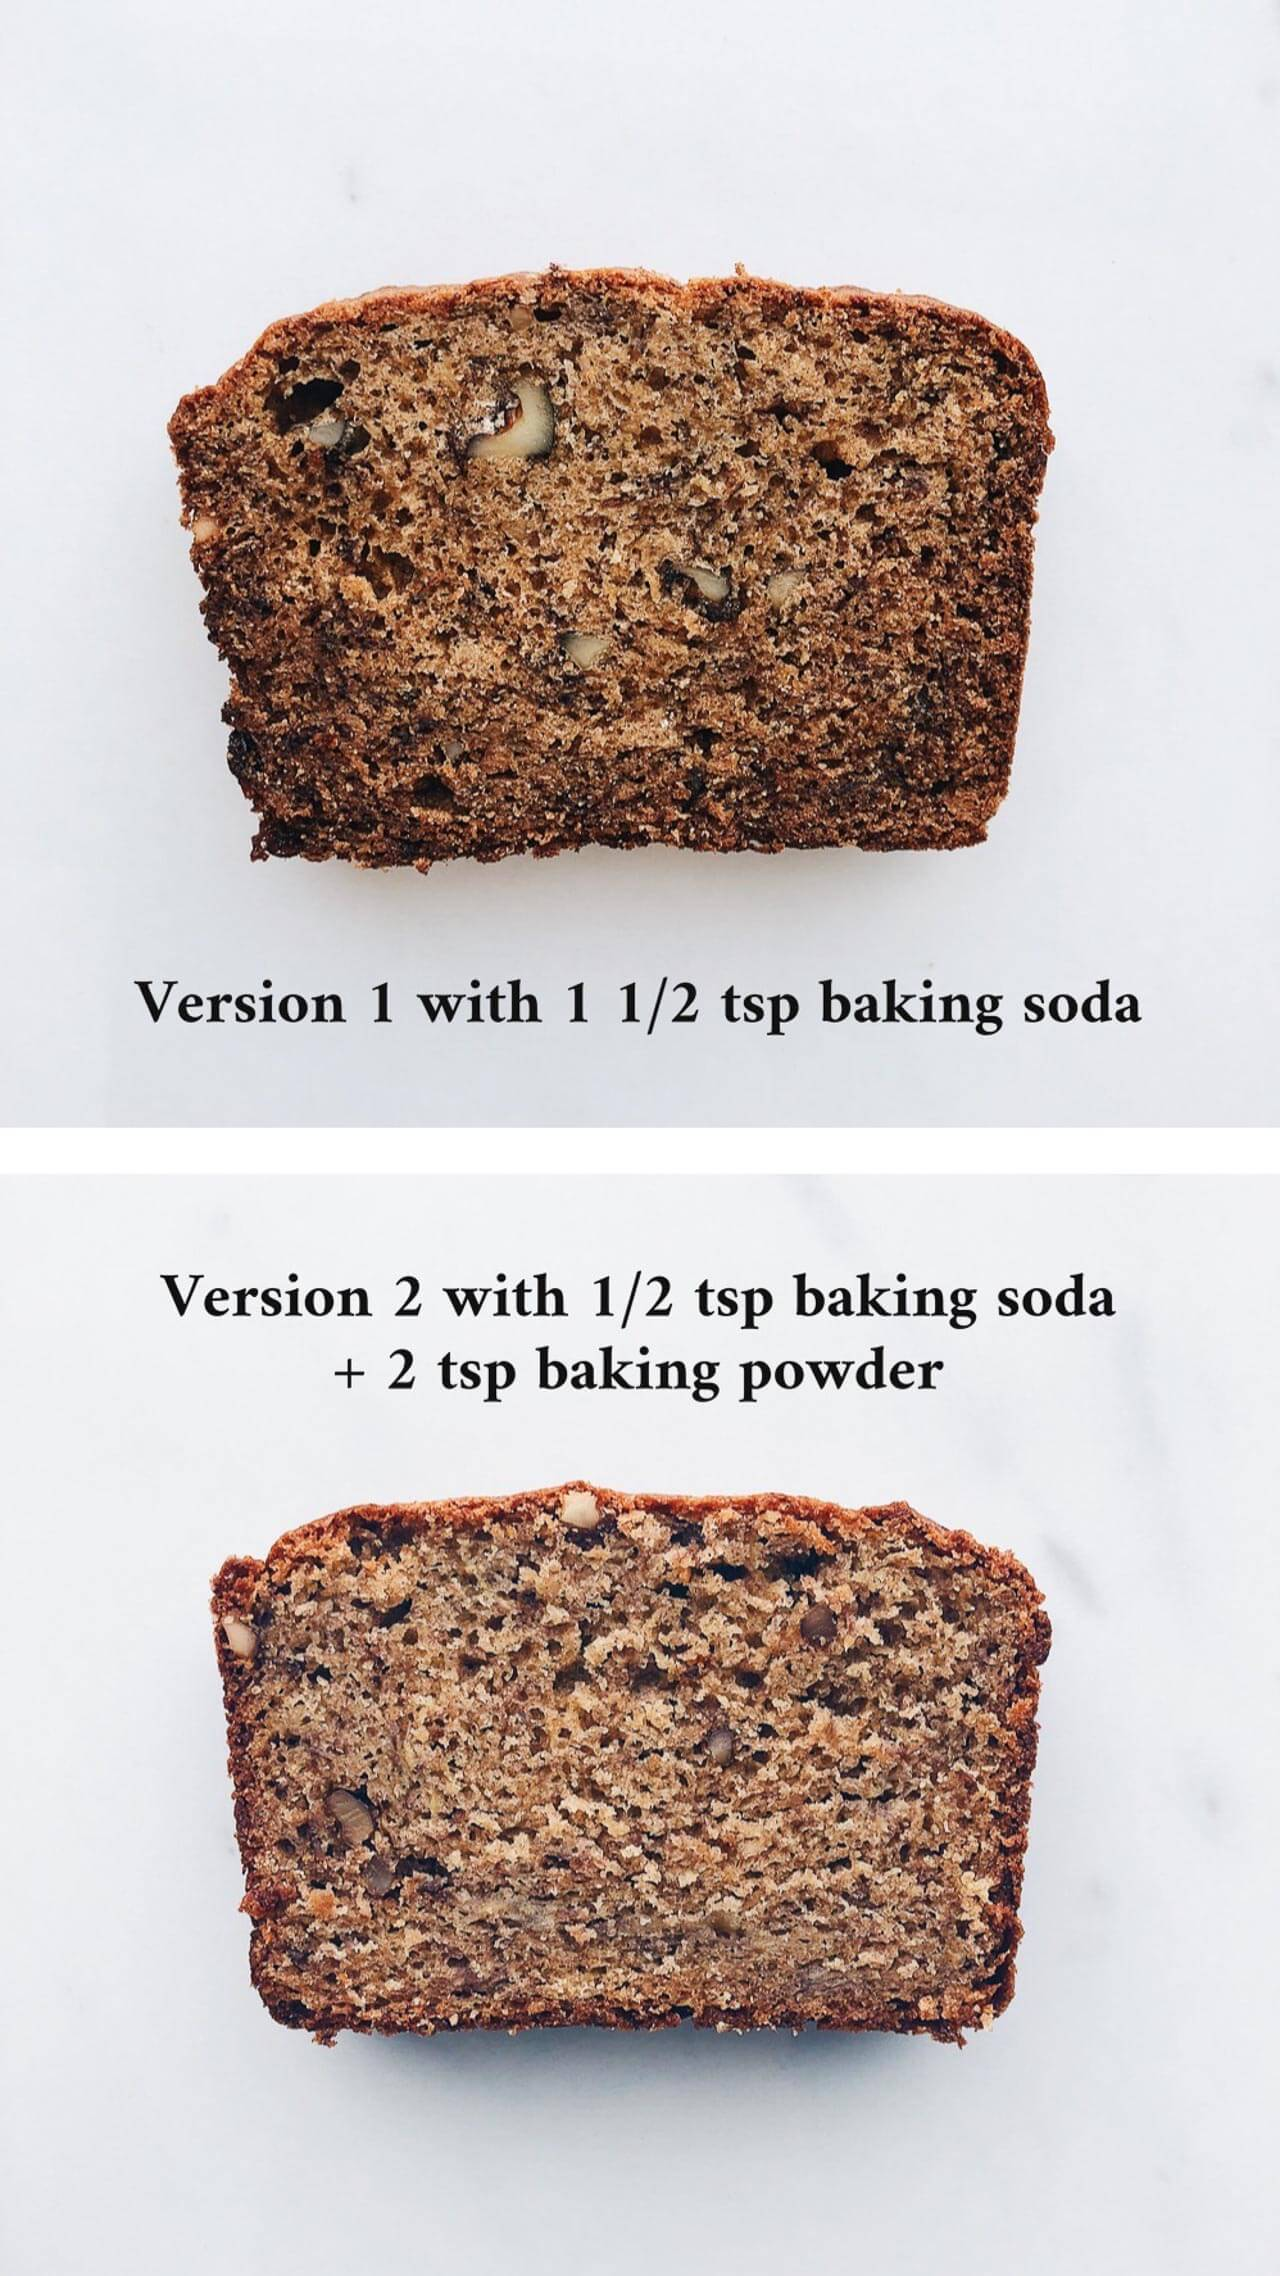 Two slices of banana bread made from different recipes. The top slice is darker and browner because it was made with more baking soda